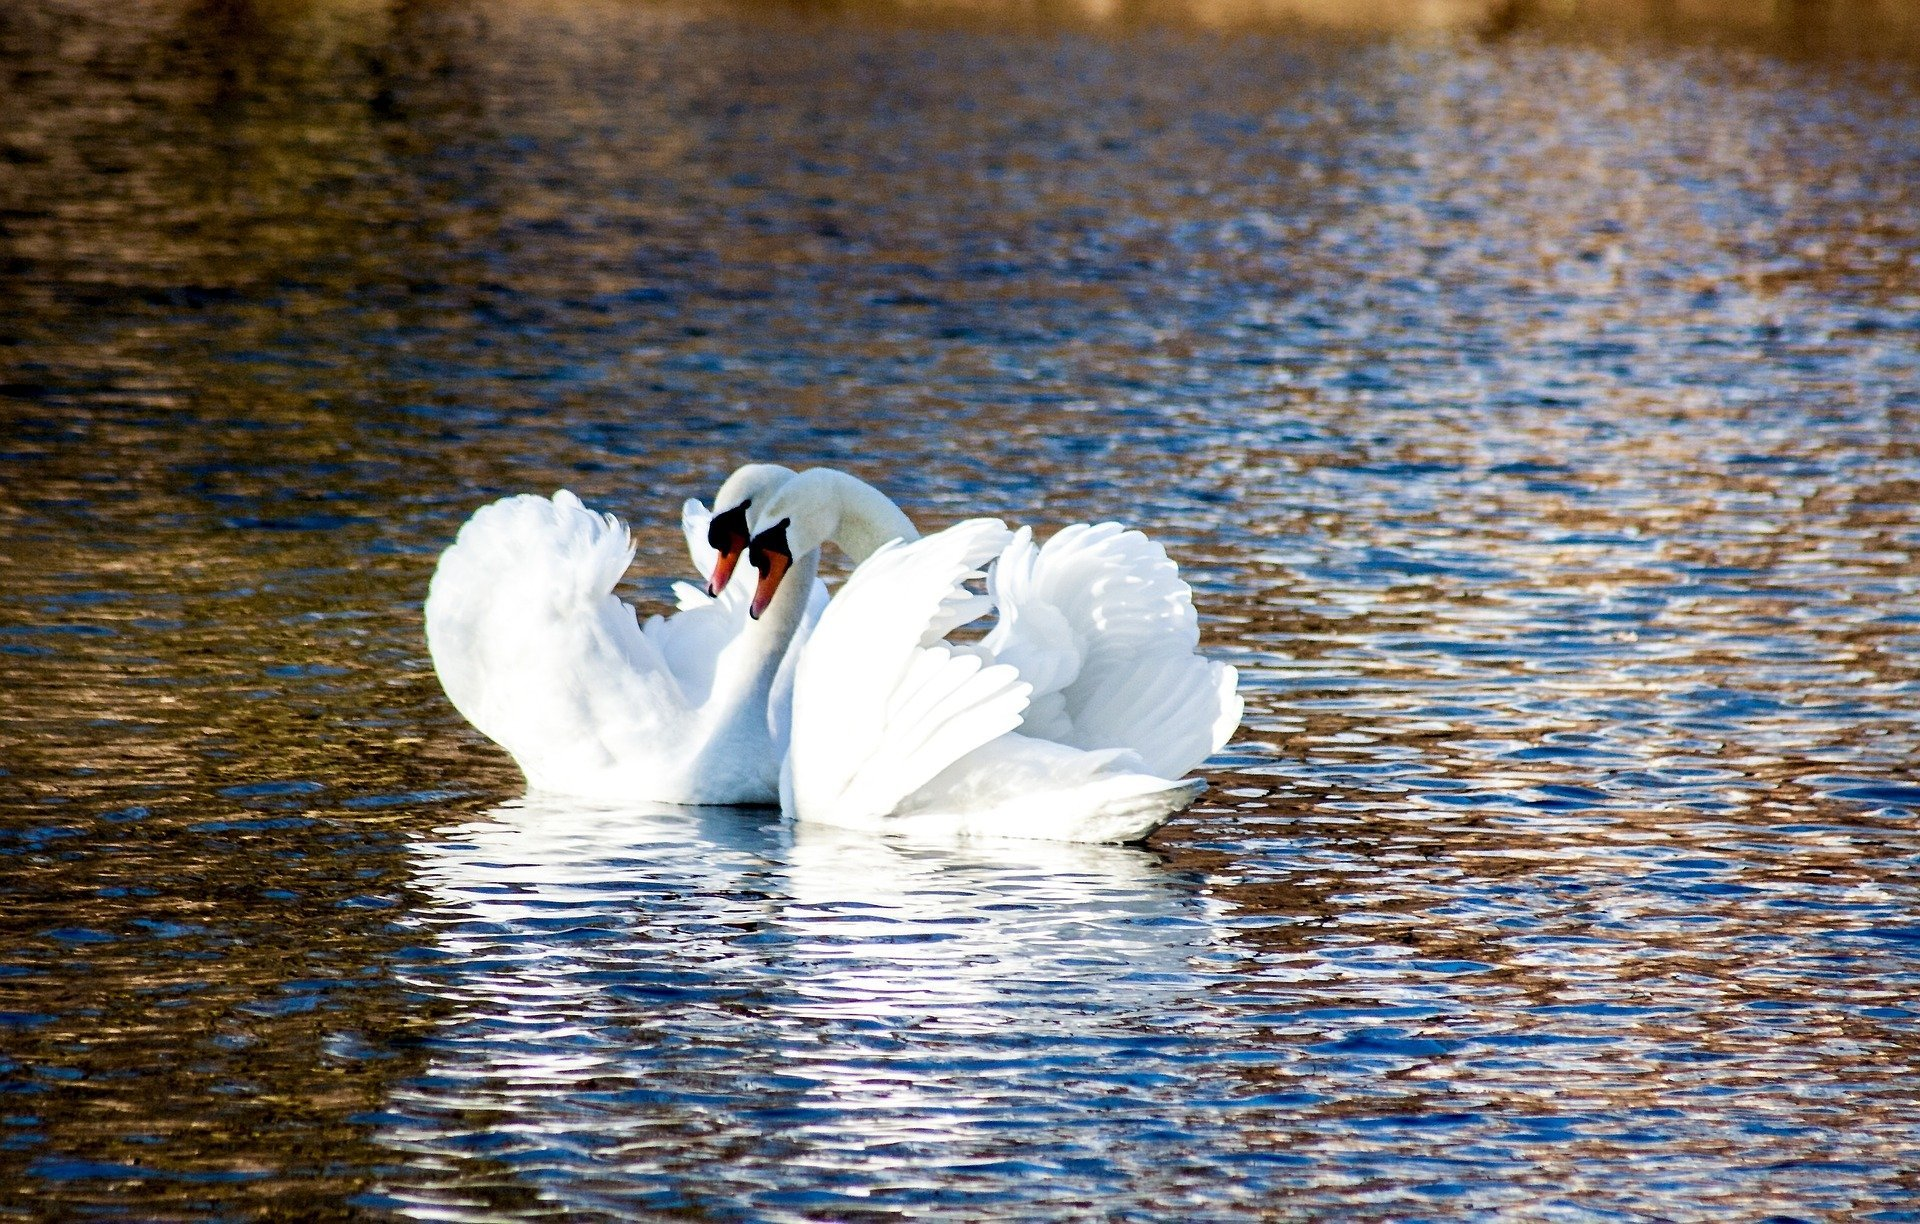 Swans. Click to see more of Adorable Animal Pictures for Valentine's Day | Animals Zone